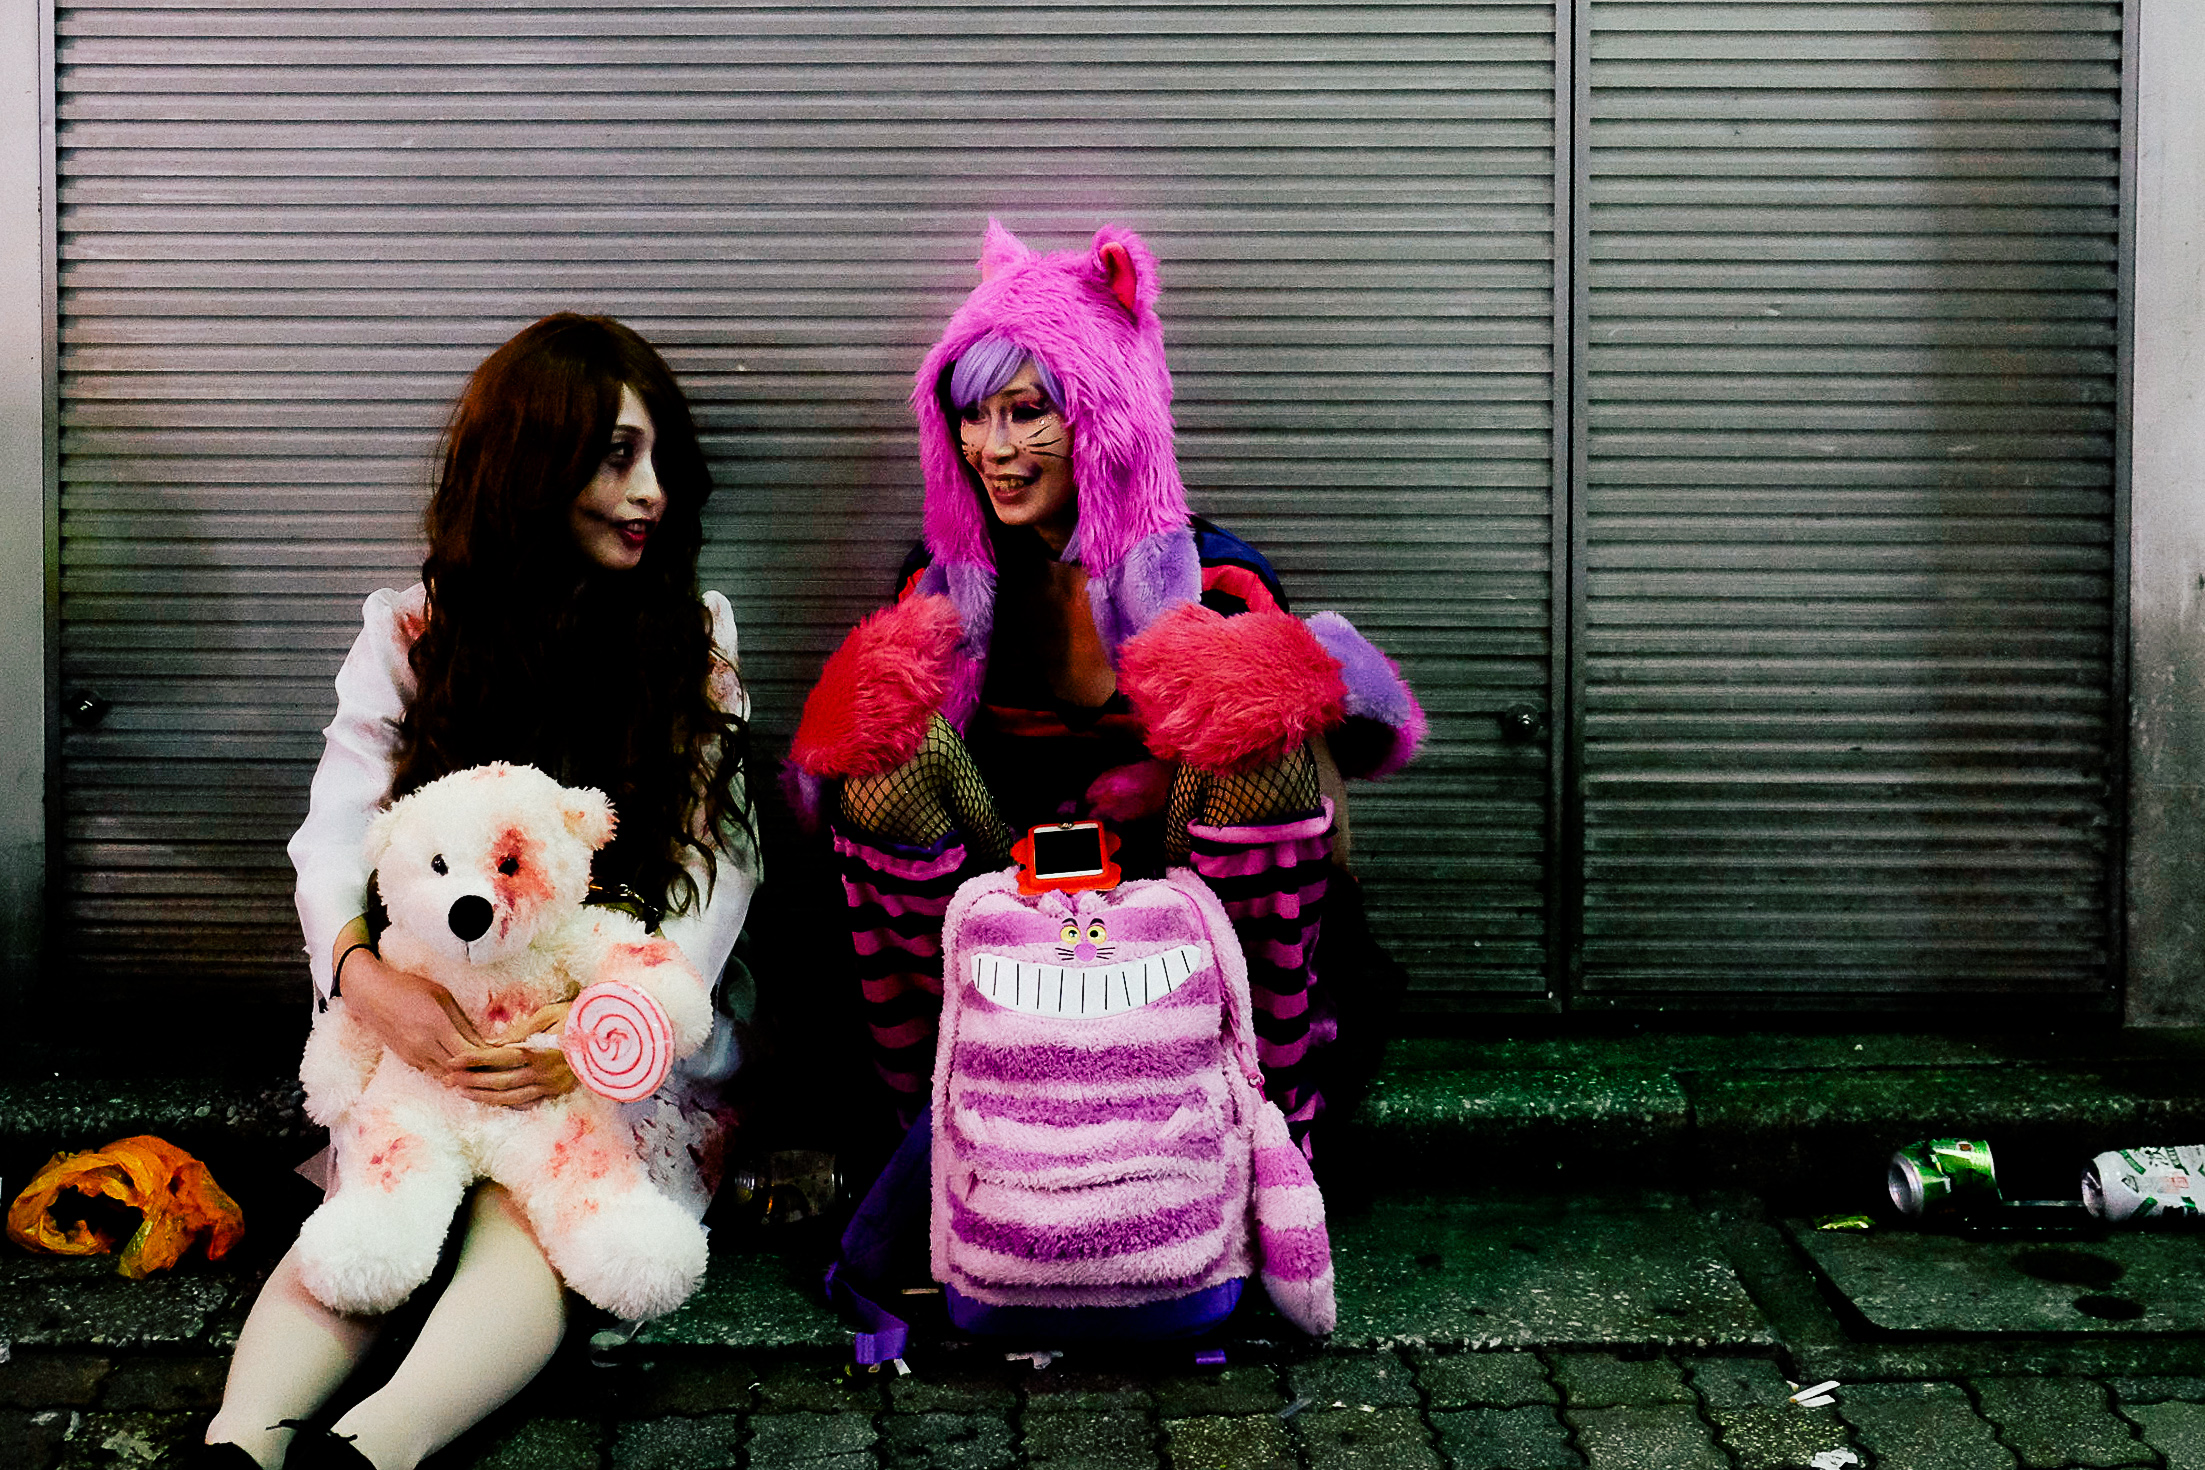 Girls wearing colourful and anime inspired costumes.